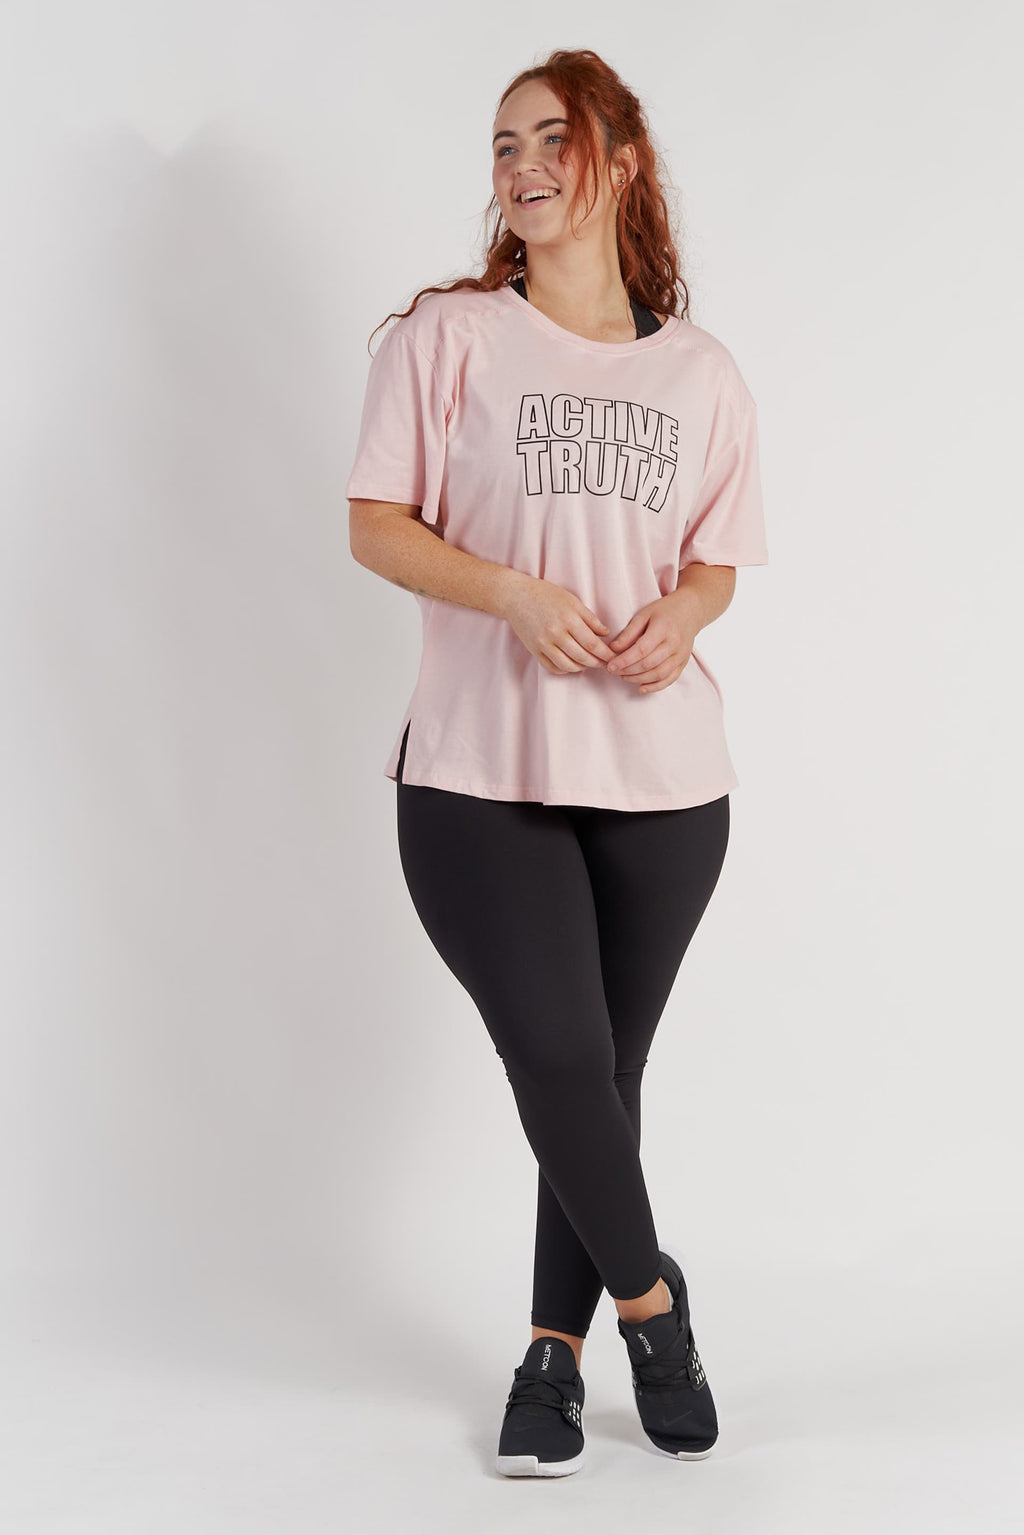 activewear-lightweight-crew-tee-pink-large-front2